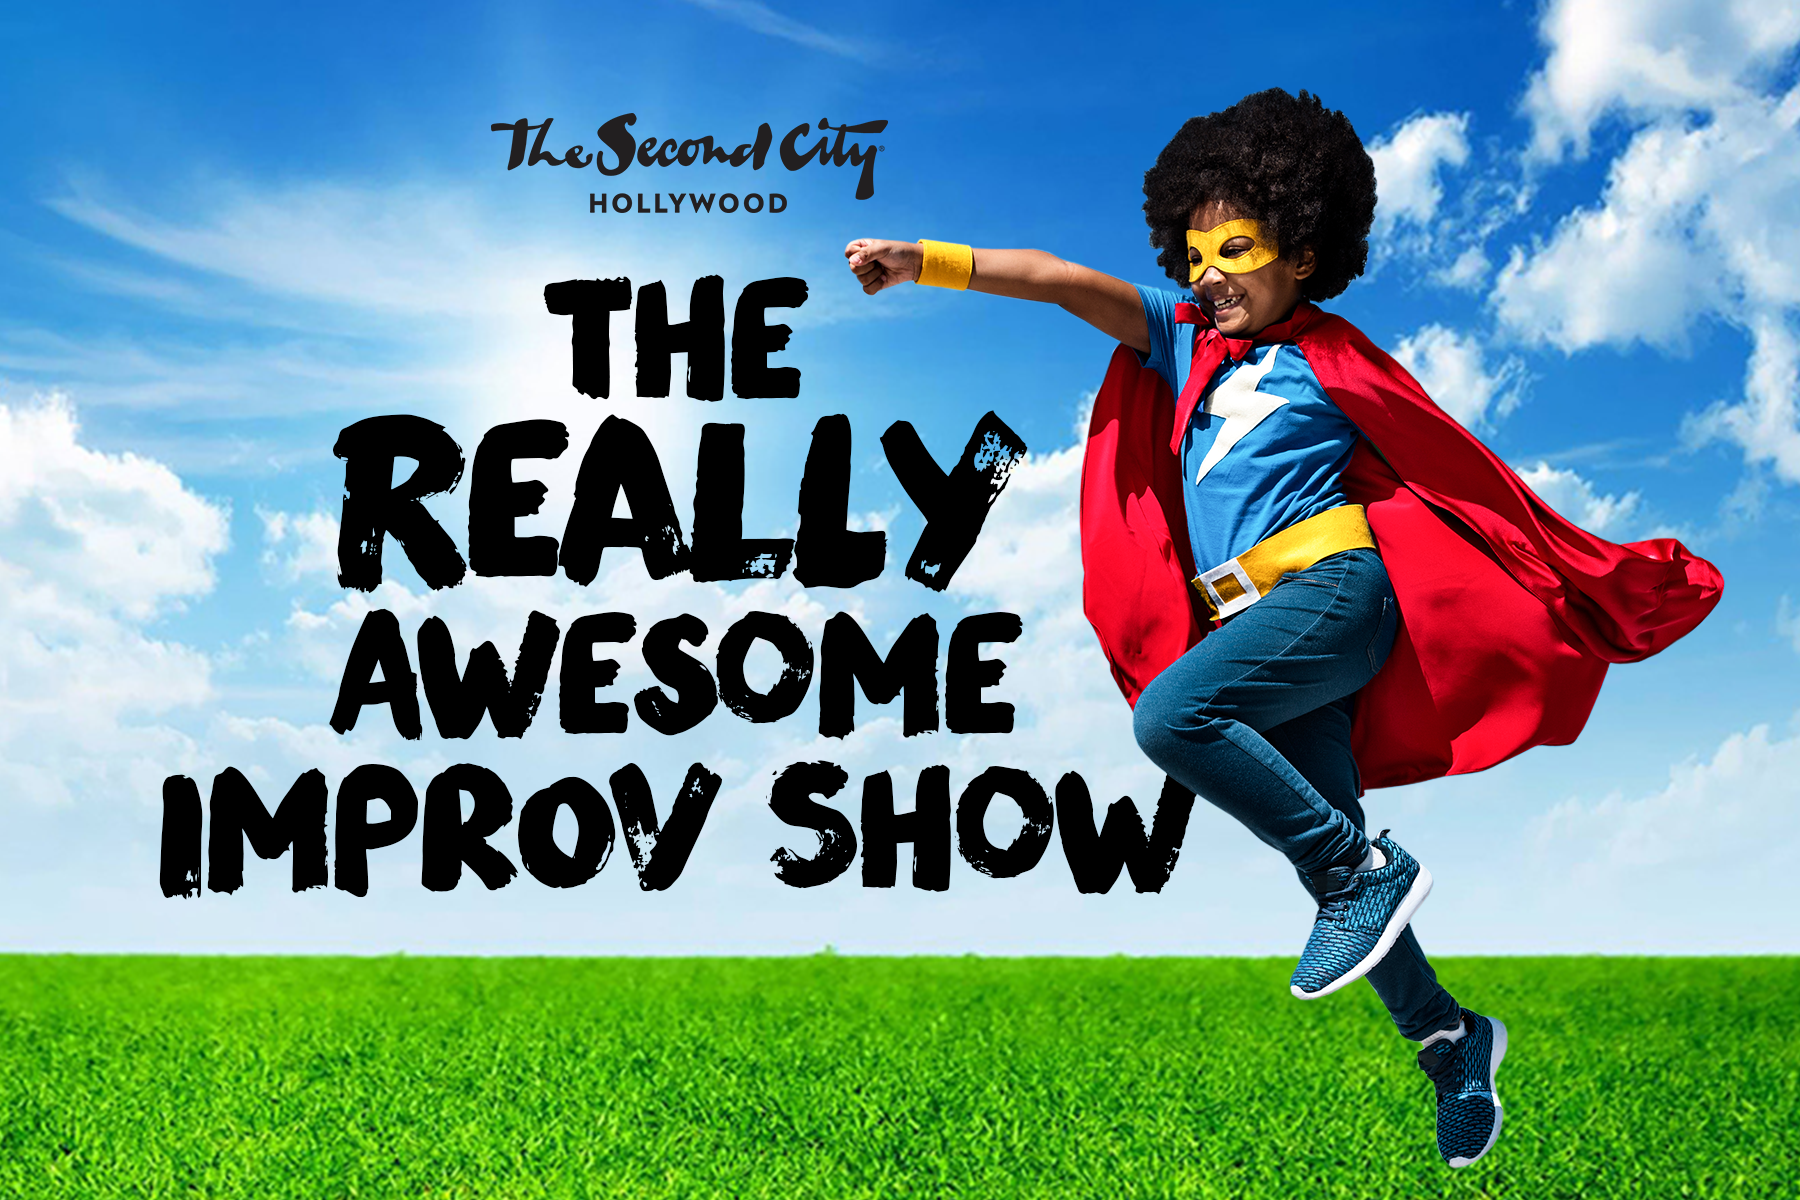 LATC_Really_Awesome_Improv_Show_1800x1200_001.png